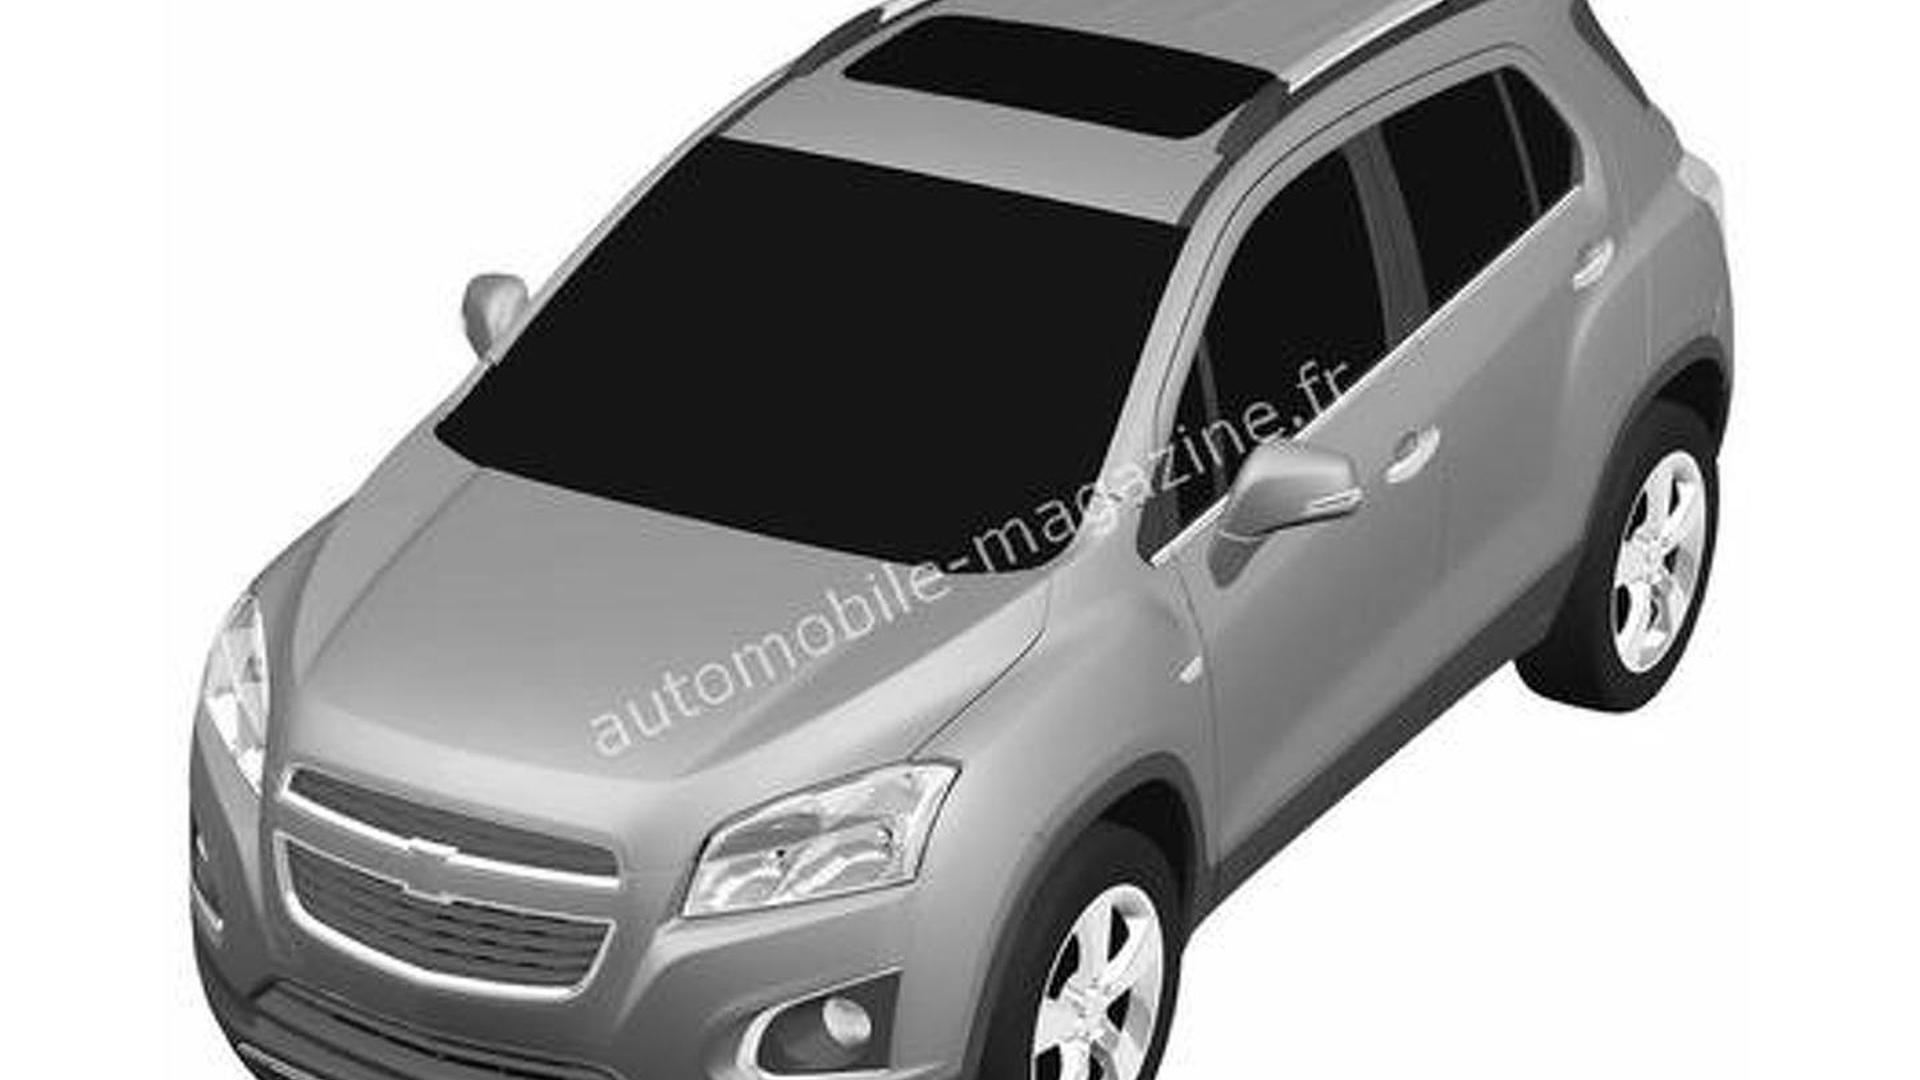 New Chevrolet crossover revealed in patent photos